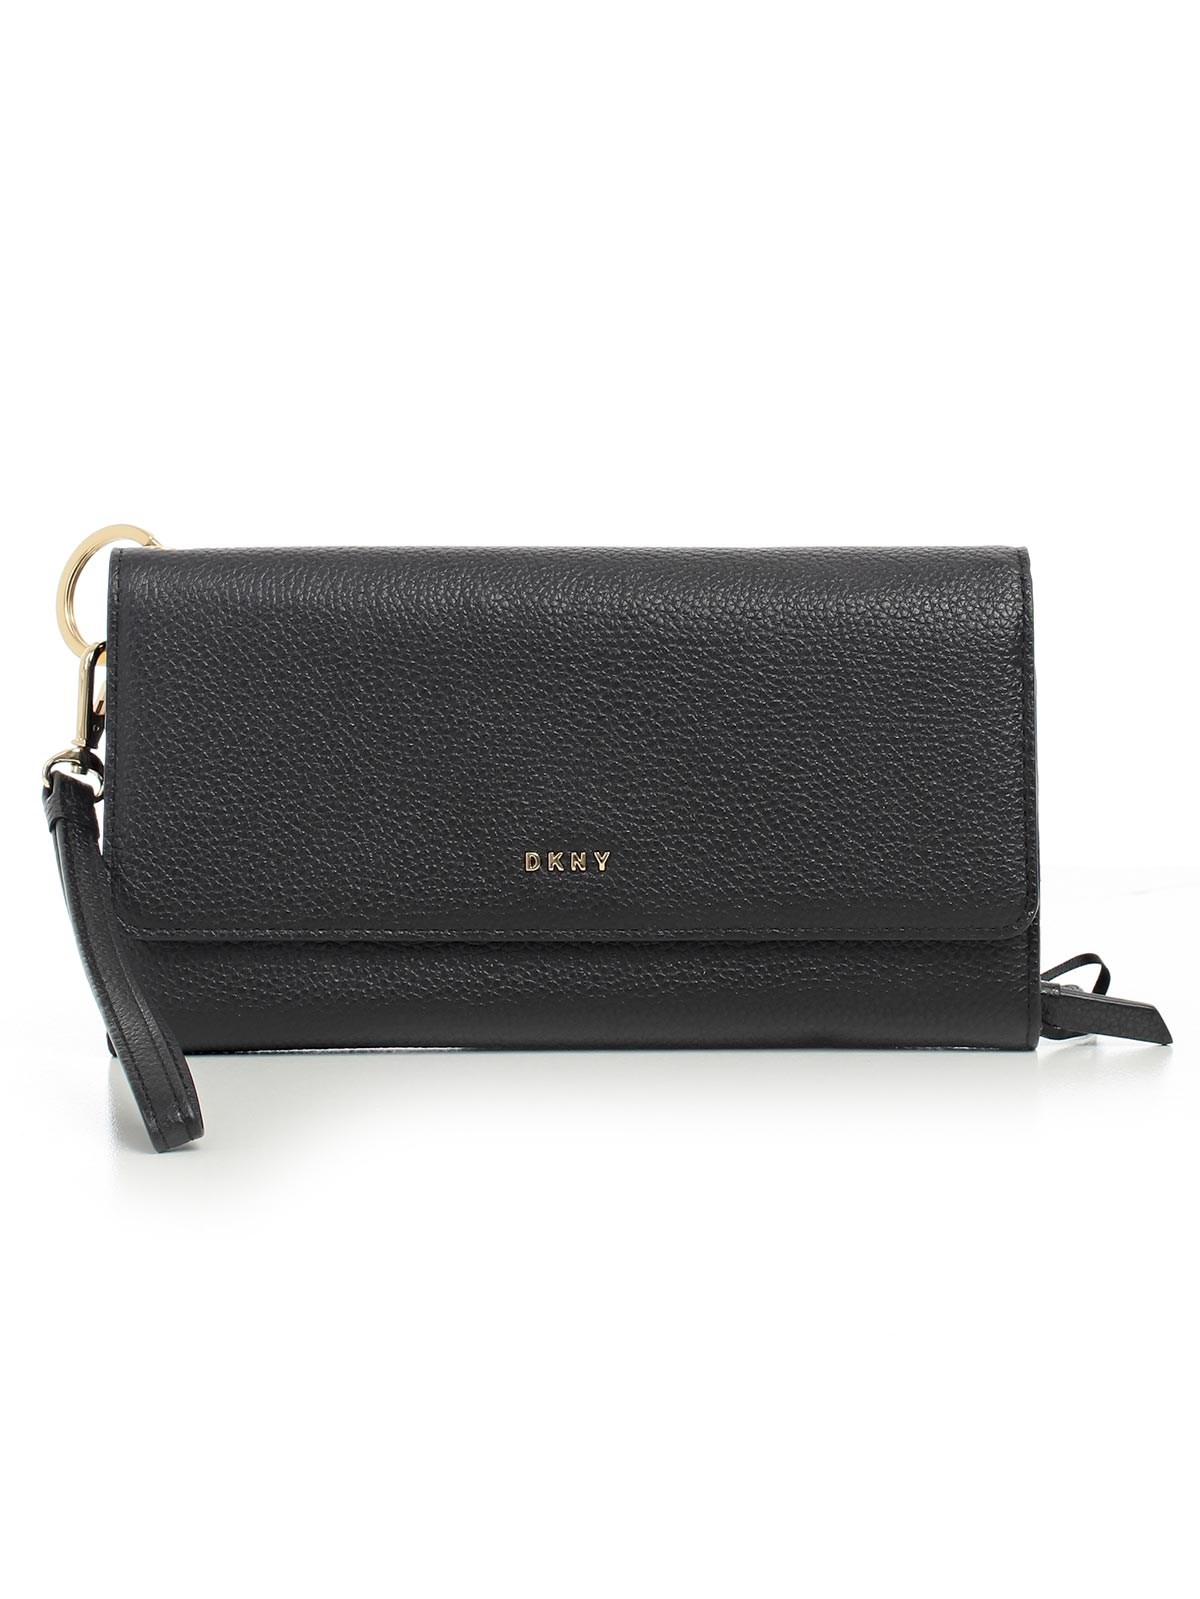 Picture of Dkny Wallets & Purses